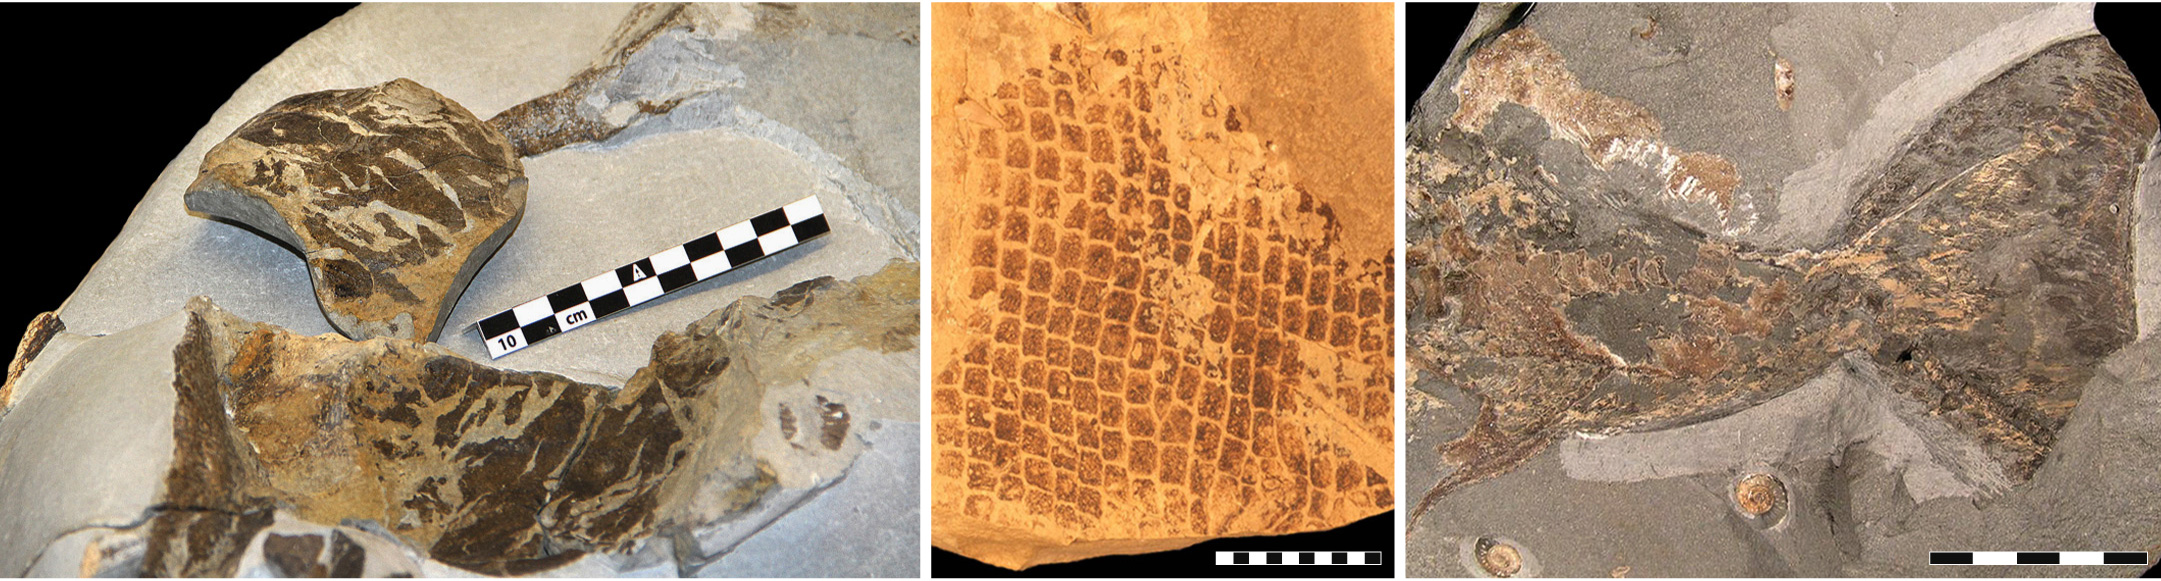 Left: an image of fossilized skin from a 55 million year old leatherback turtle (scale bar, 10 cm). Center: scales from an 85 million-year-old mosasaur (scale bar, 10 mm). Right: the tail fin from a 196 million-year-old ichthyosaur (scale bar, 5 cm). Image credit: Bo Pagh Schultz, Johan Lindgren and Johan A. Gren.